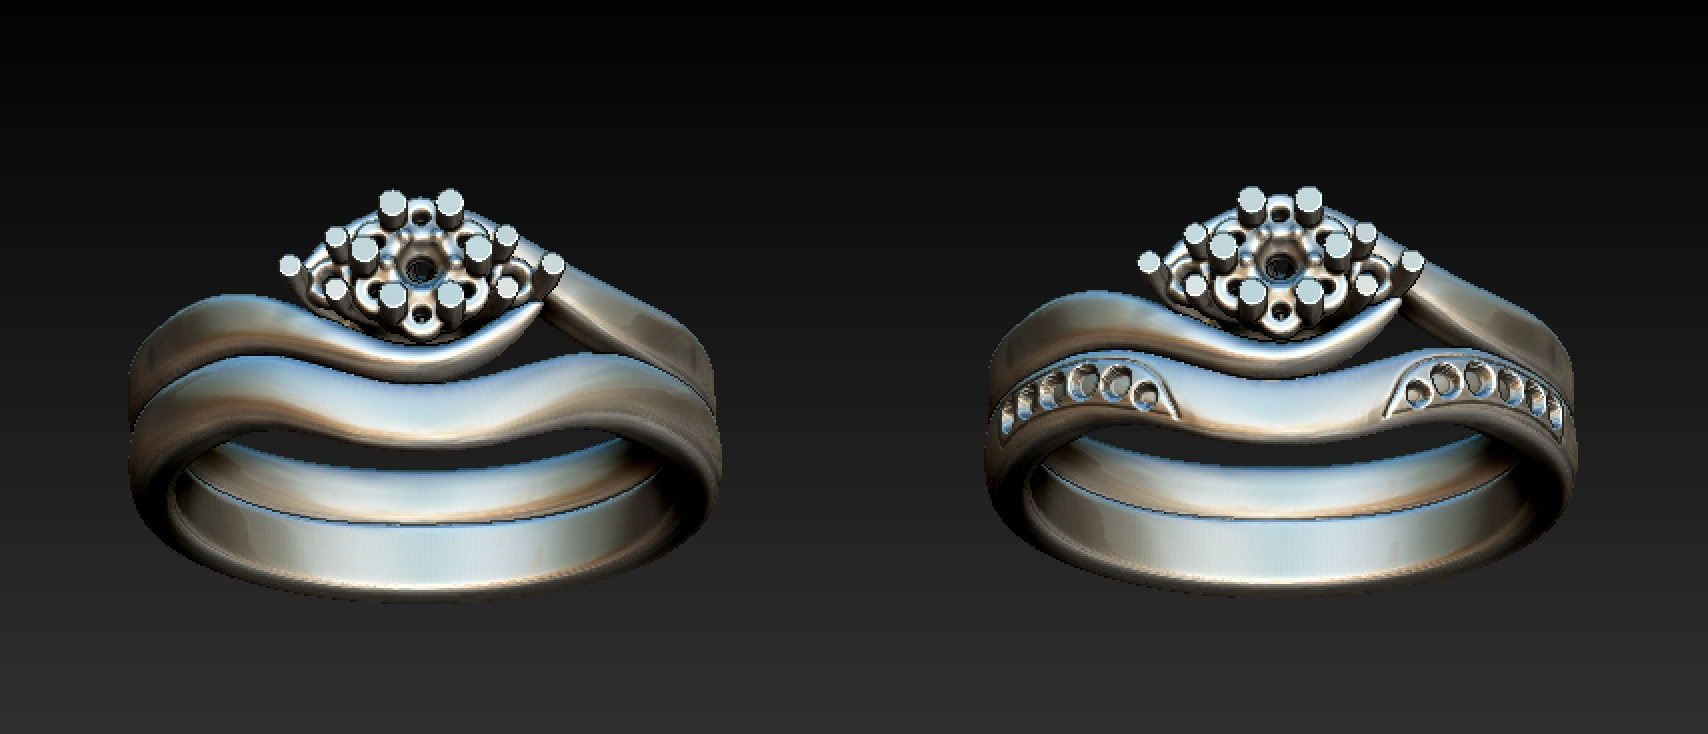 Copy of Cad designs for shaped and fitted wedding ring.